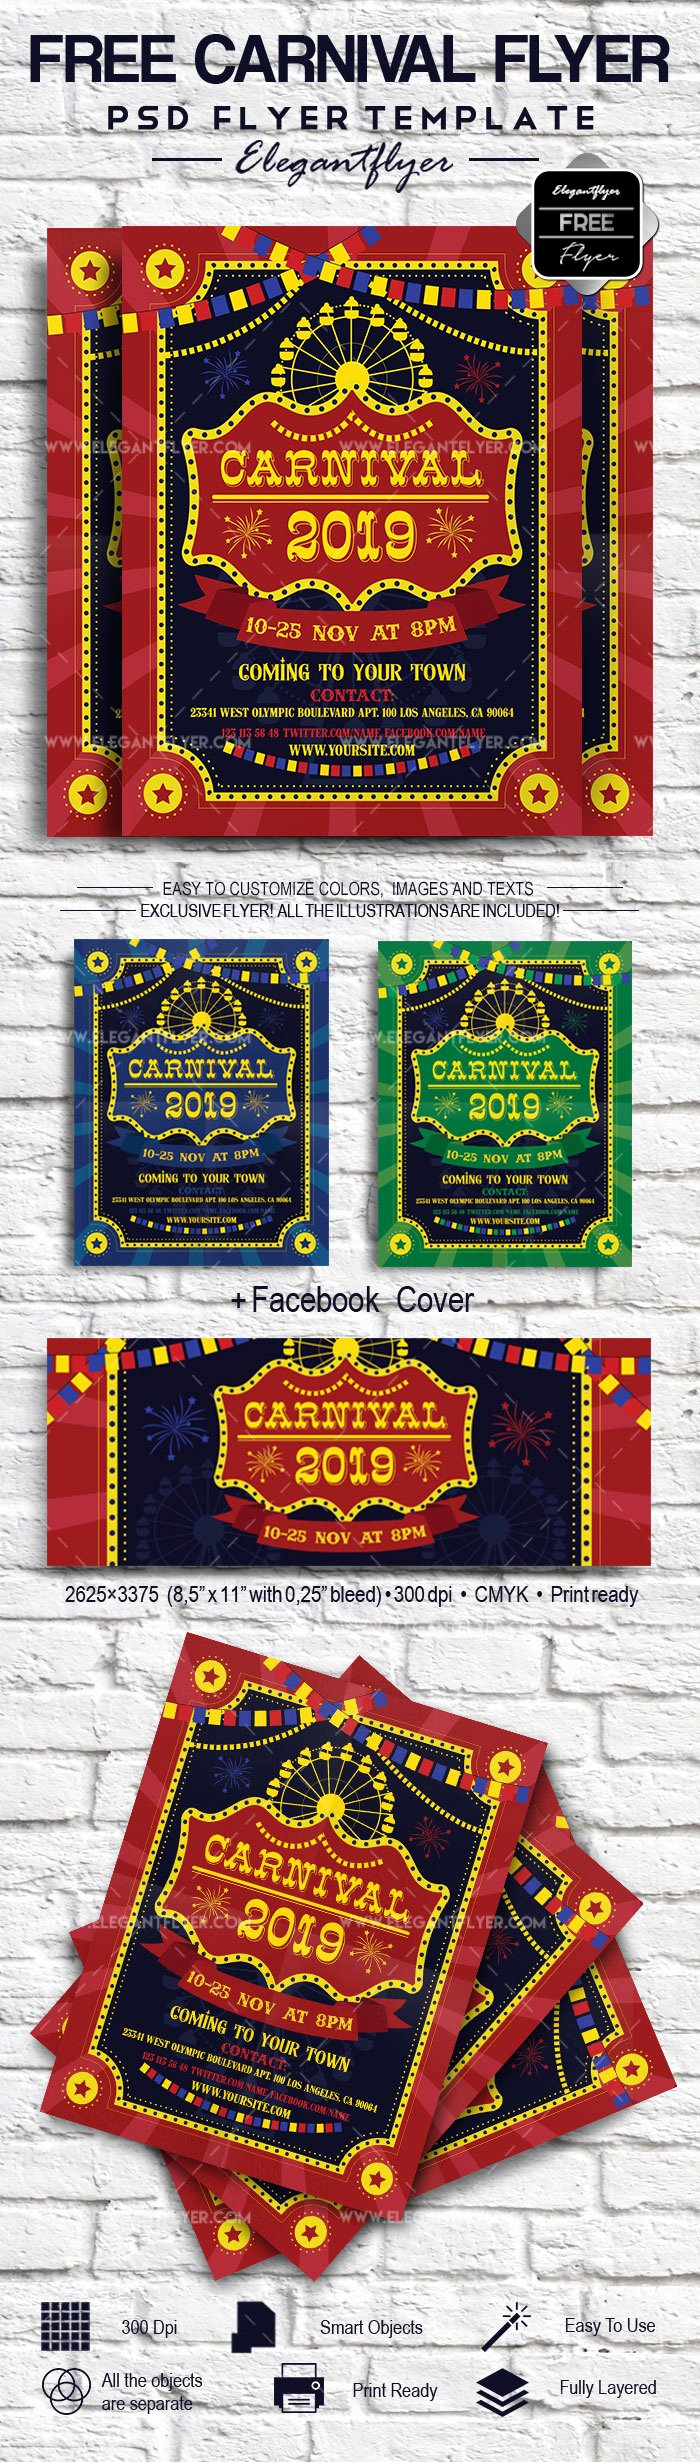 Carnival Flyer Template Free Elegant Carnival Free Flyer Template – by Elegantflyer